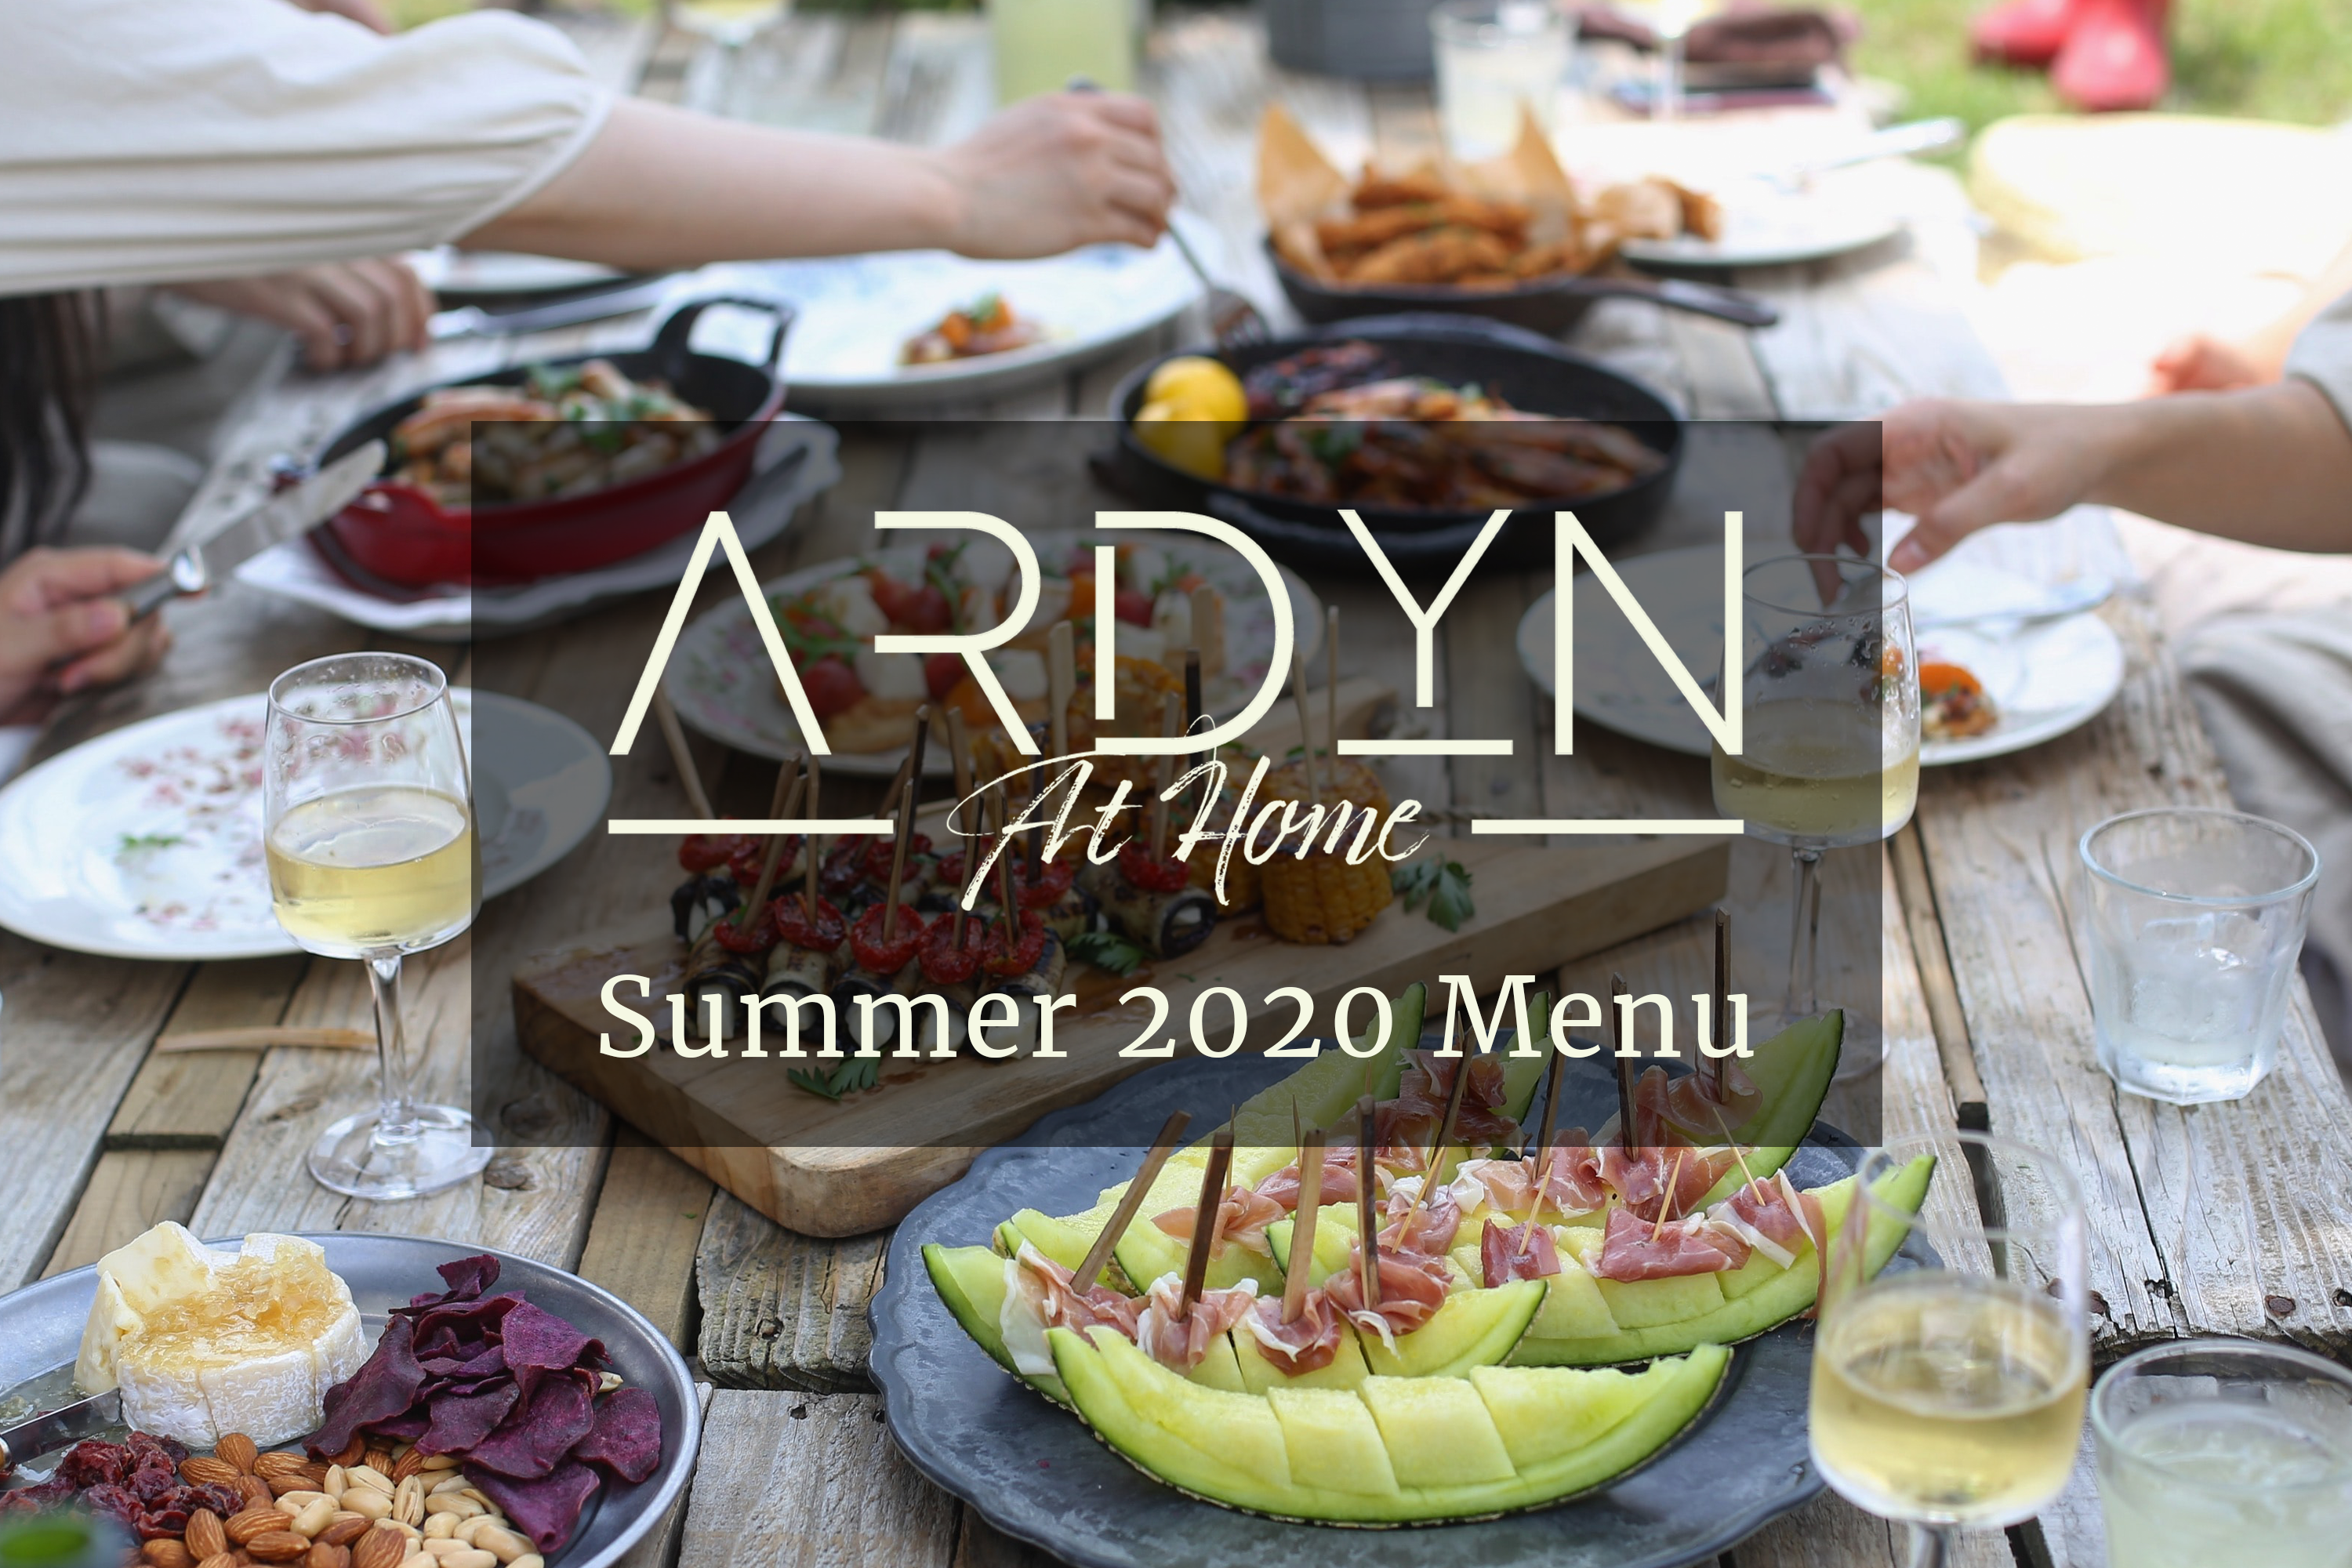 Summer 2020 Menu - ARDYN at Home Dinner Package